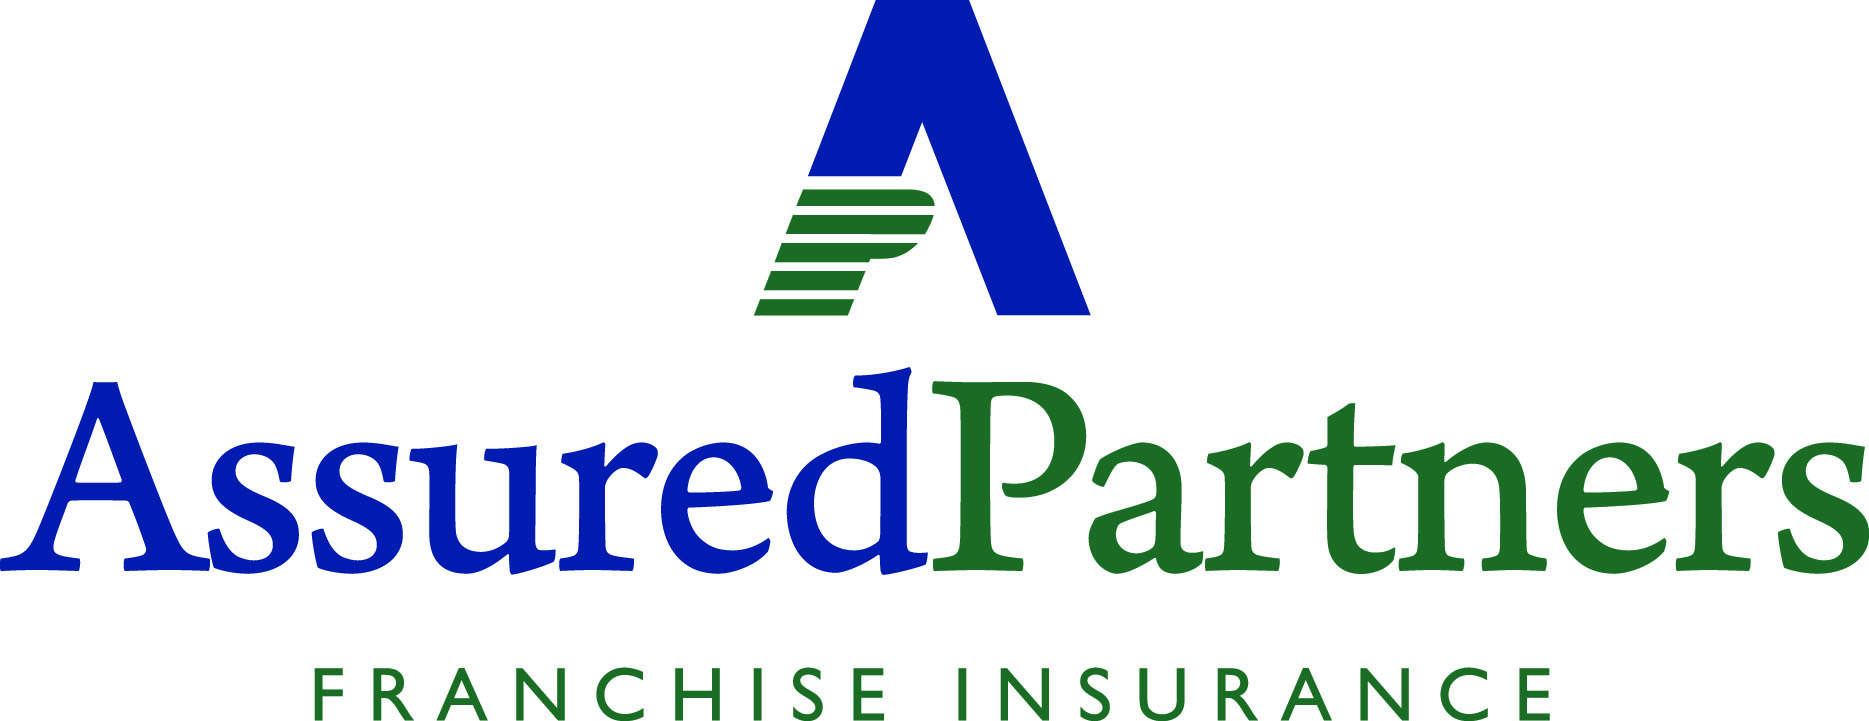 AssuredPartners Franchise Insurance